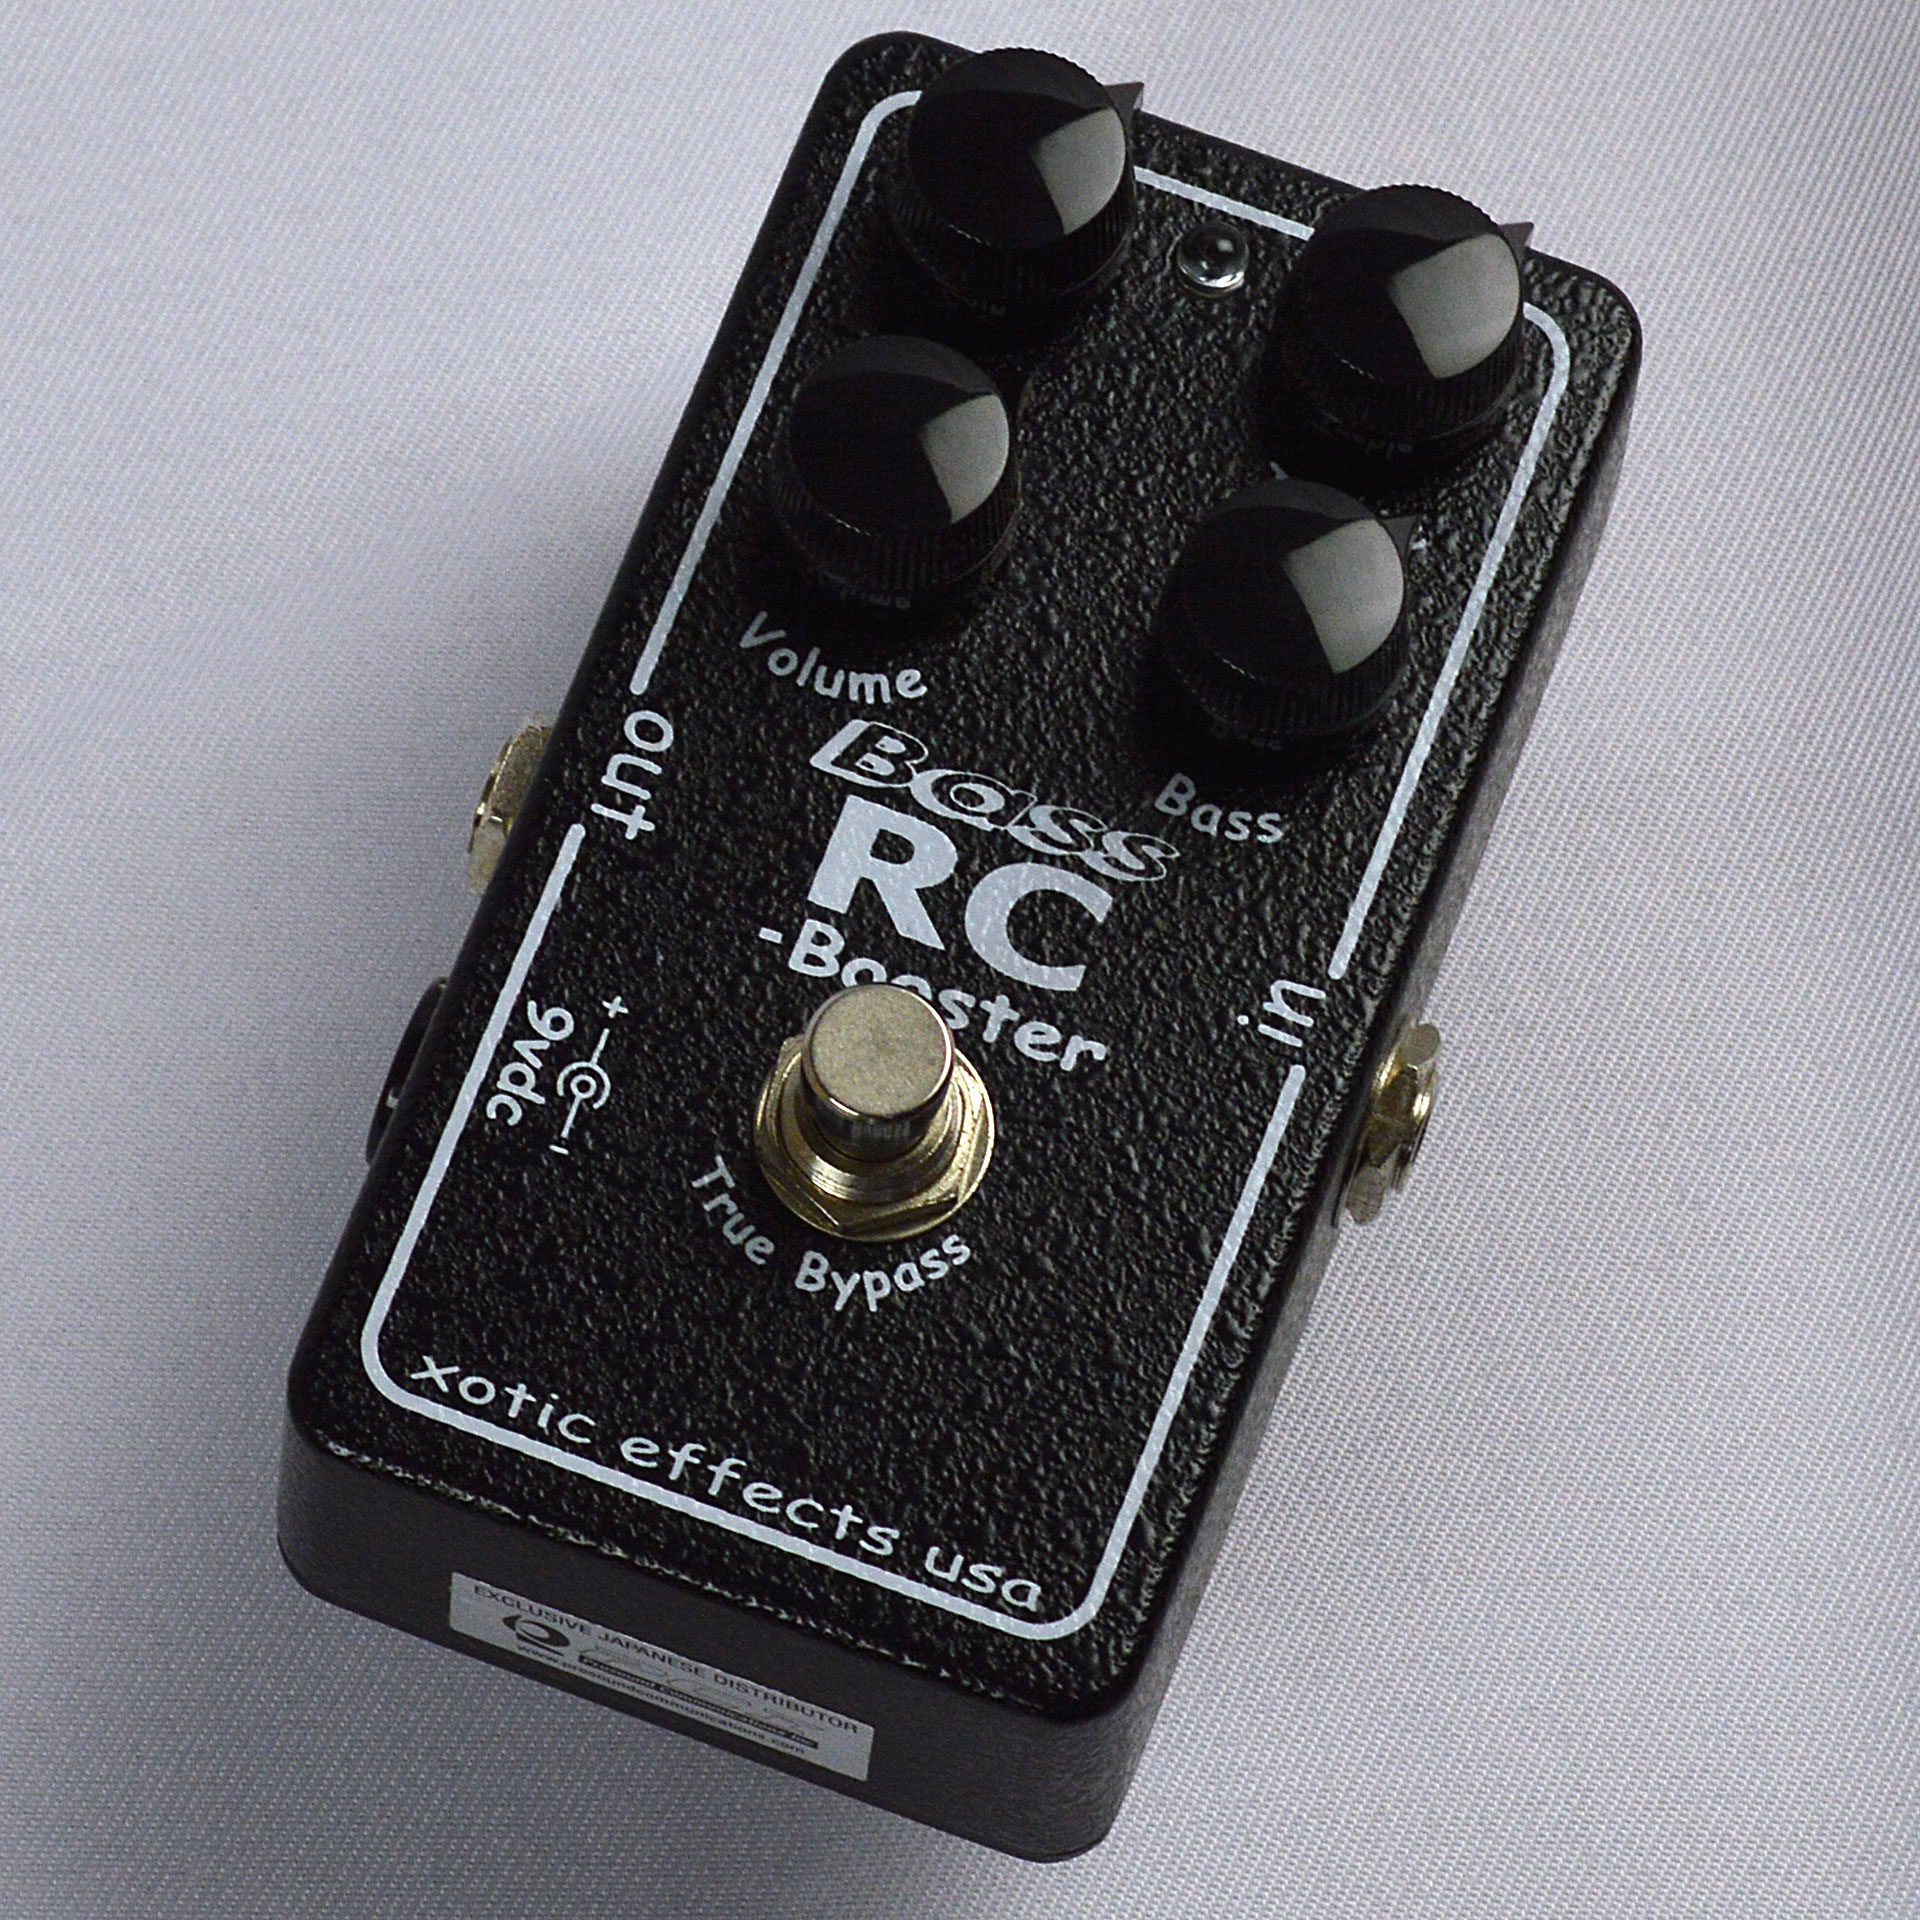 XOTIC Bass RC Boosterサムネ画像